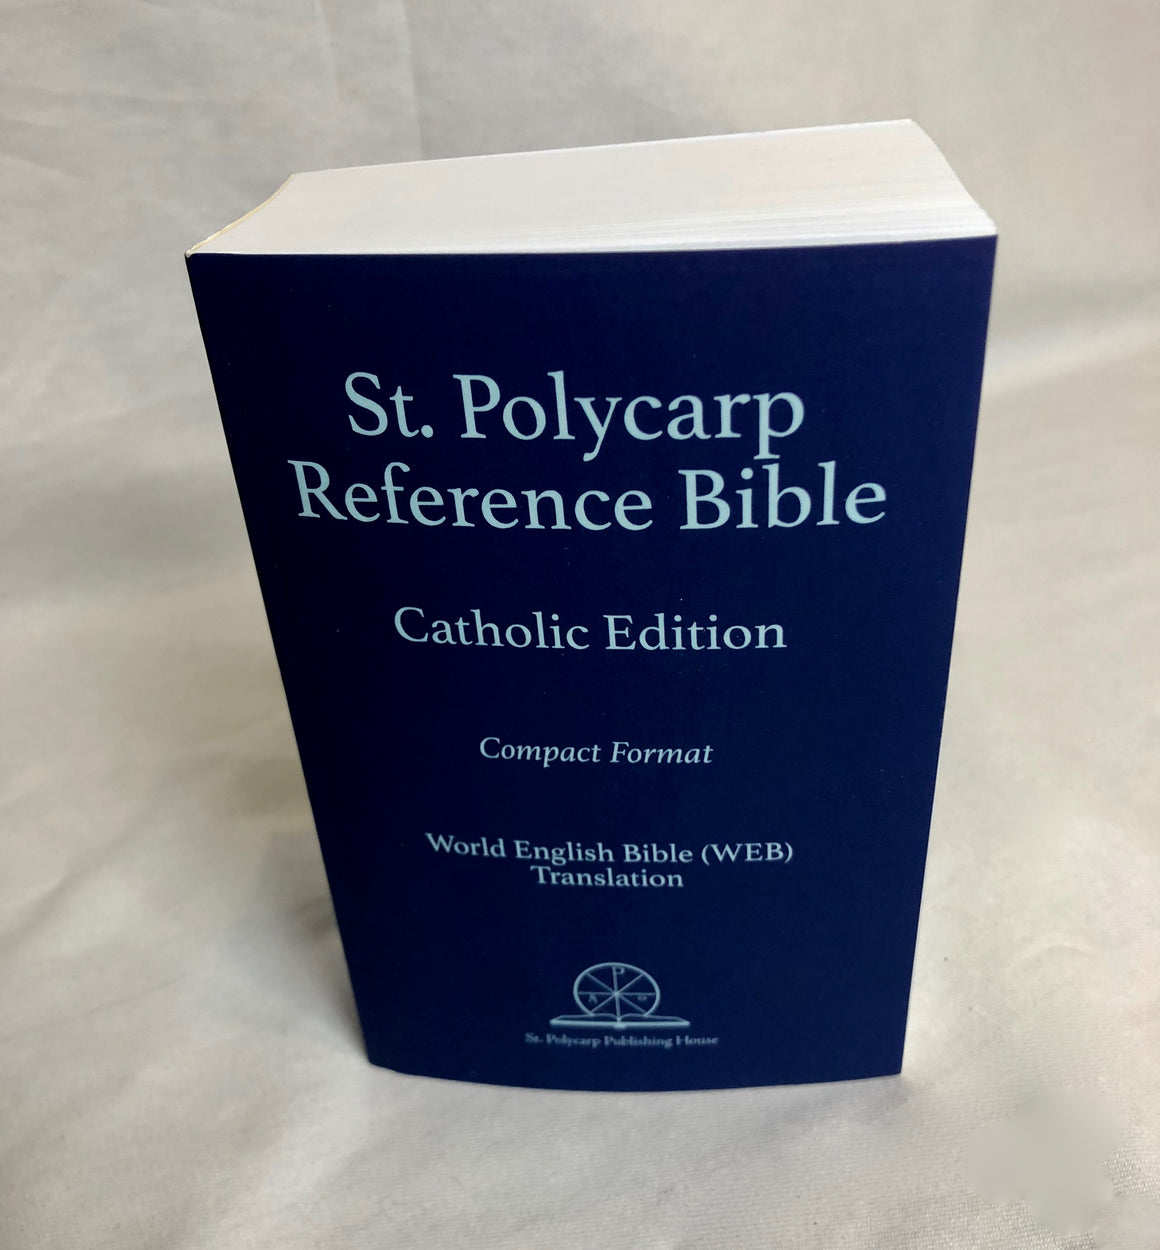 St. Polycarp Reference Bible: Catholic Edition (Paperback) - Compact Format